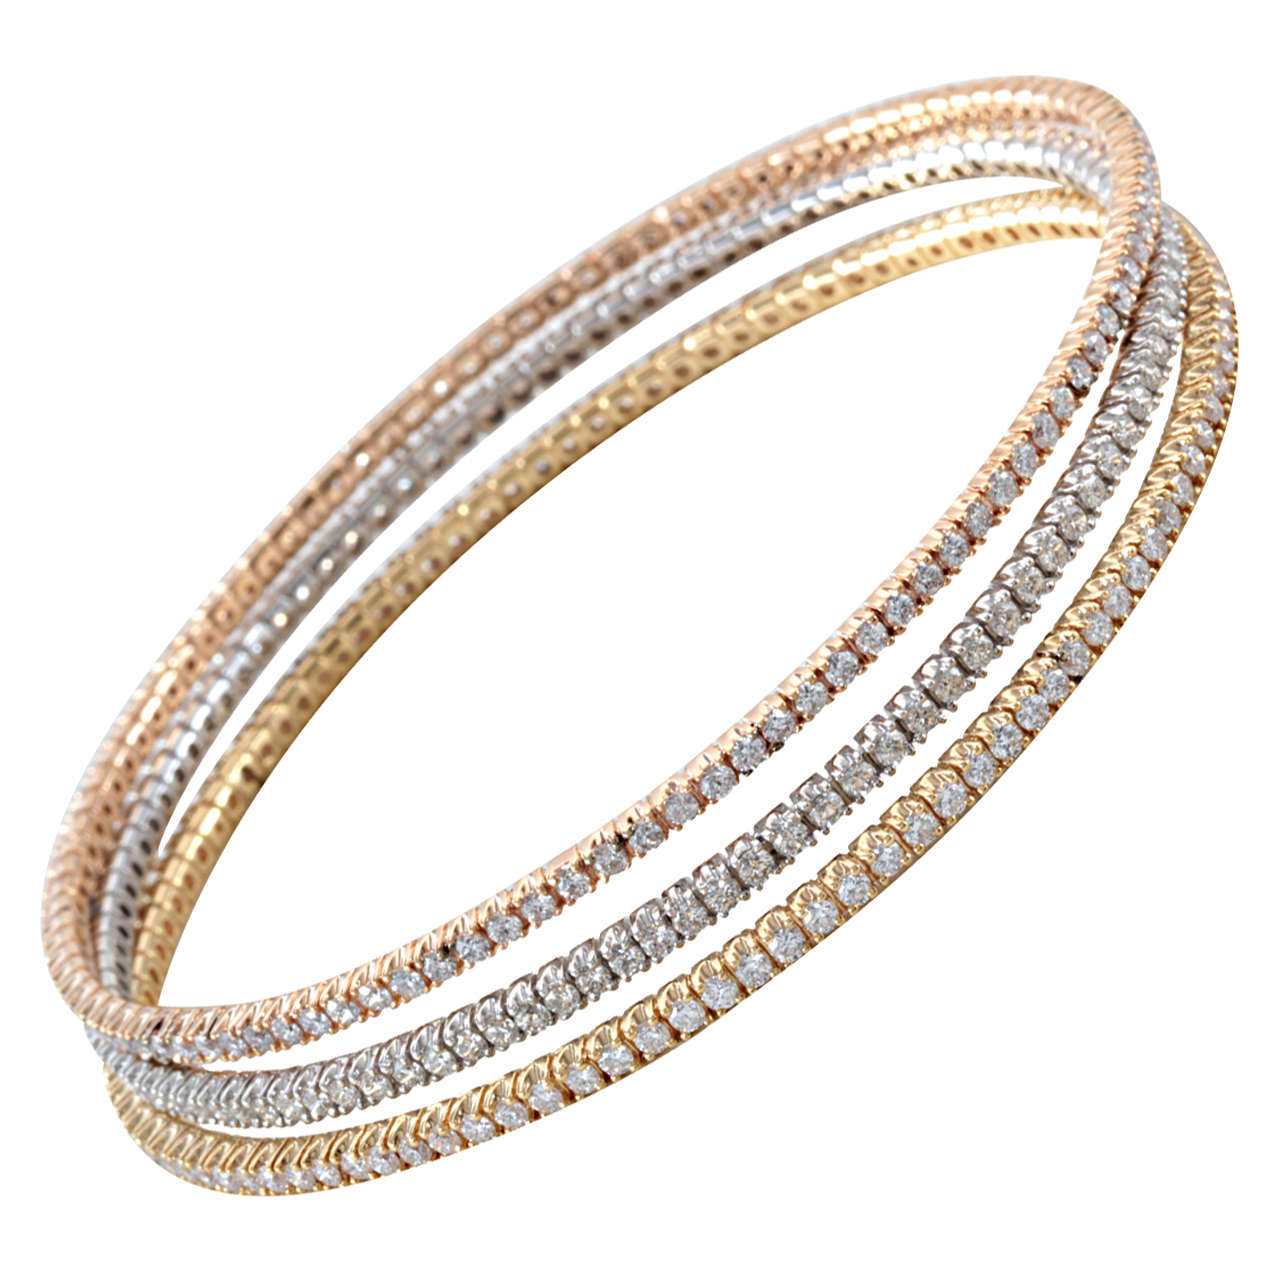 and pave id x sale yellow jewelry gold diamond bangles j bracelets on for bangle bracelet white of trio rose slip